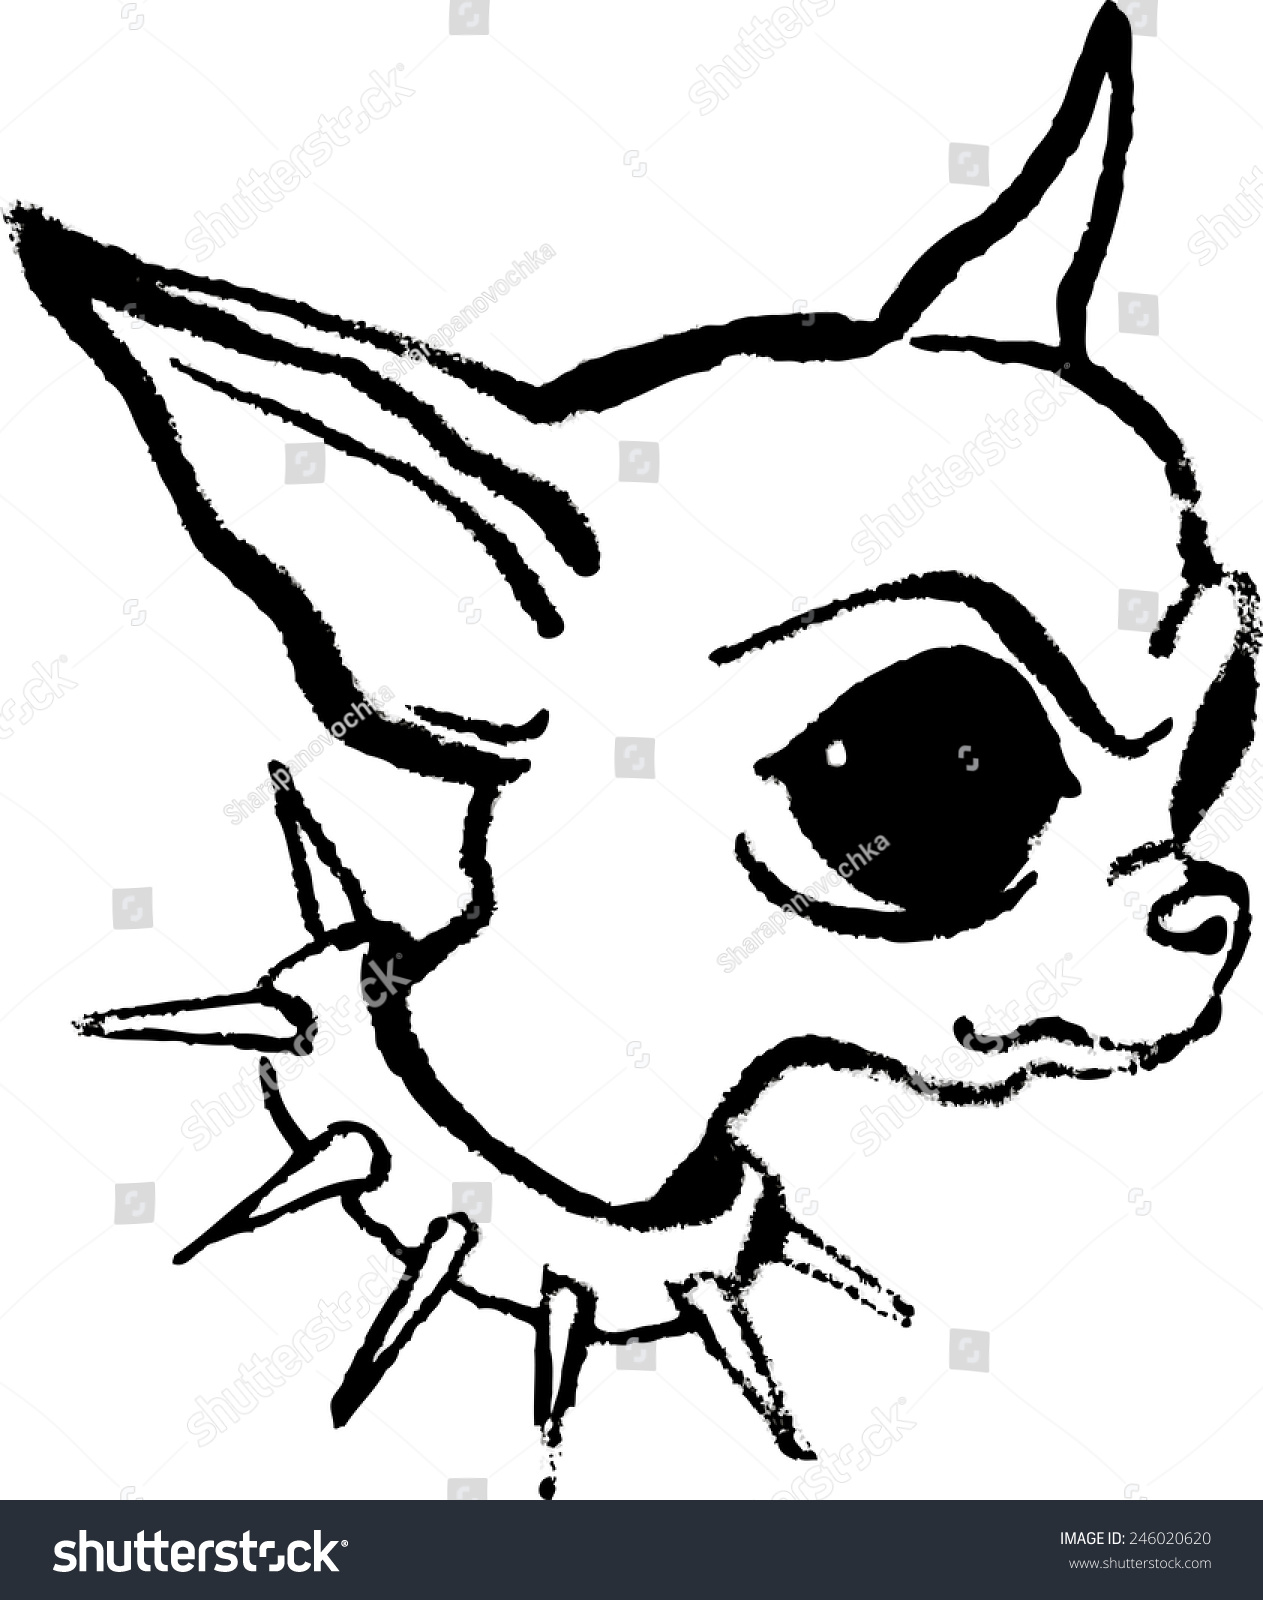 dog diagram outline large wu tang clan 8 diagrams head angry chihuahua big ears stock vector 246020620